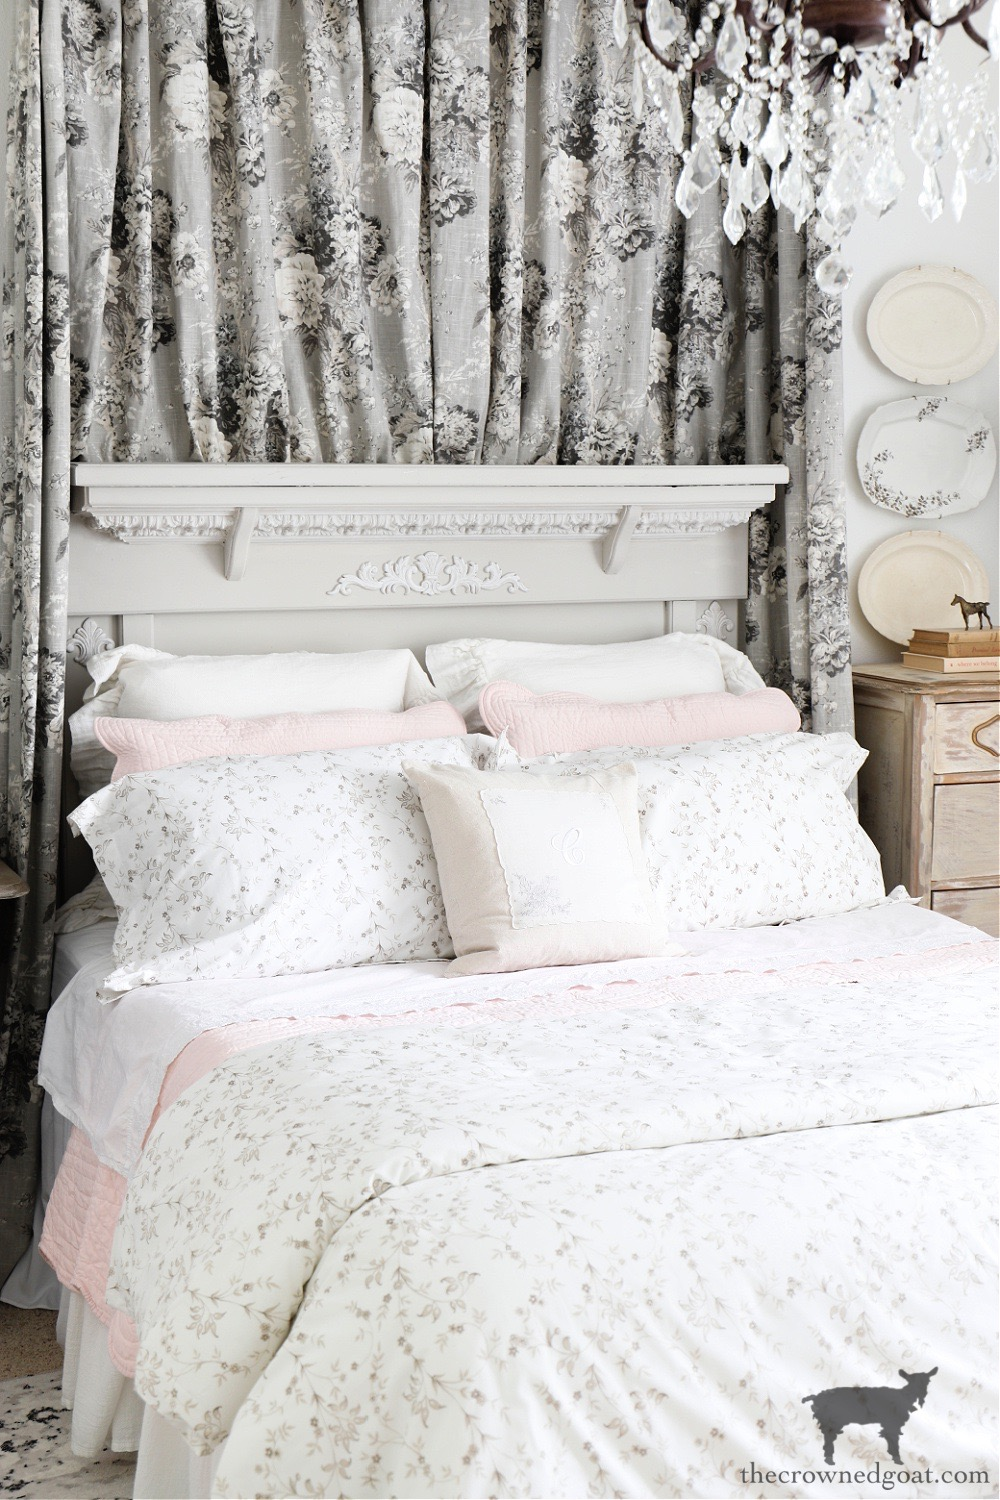 Housekeeping Habits We Practice Every Day-Make Your Bed-The Crowned Goat